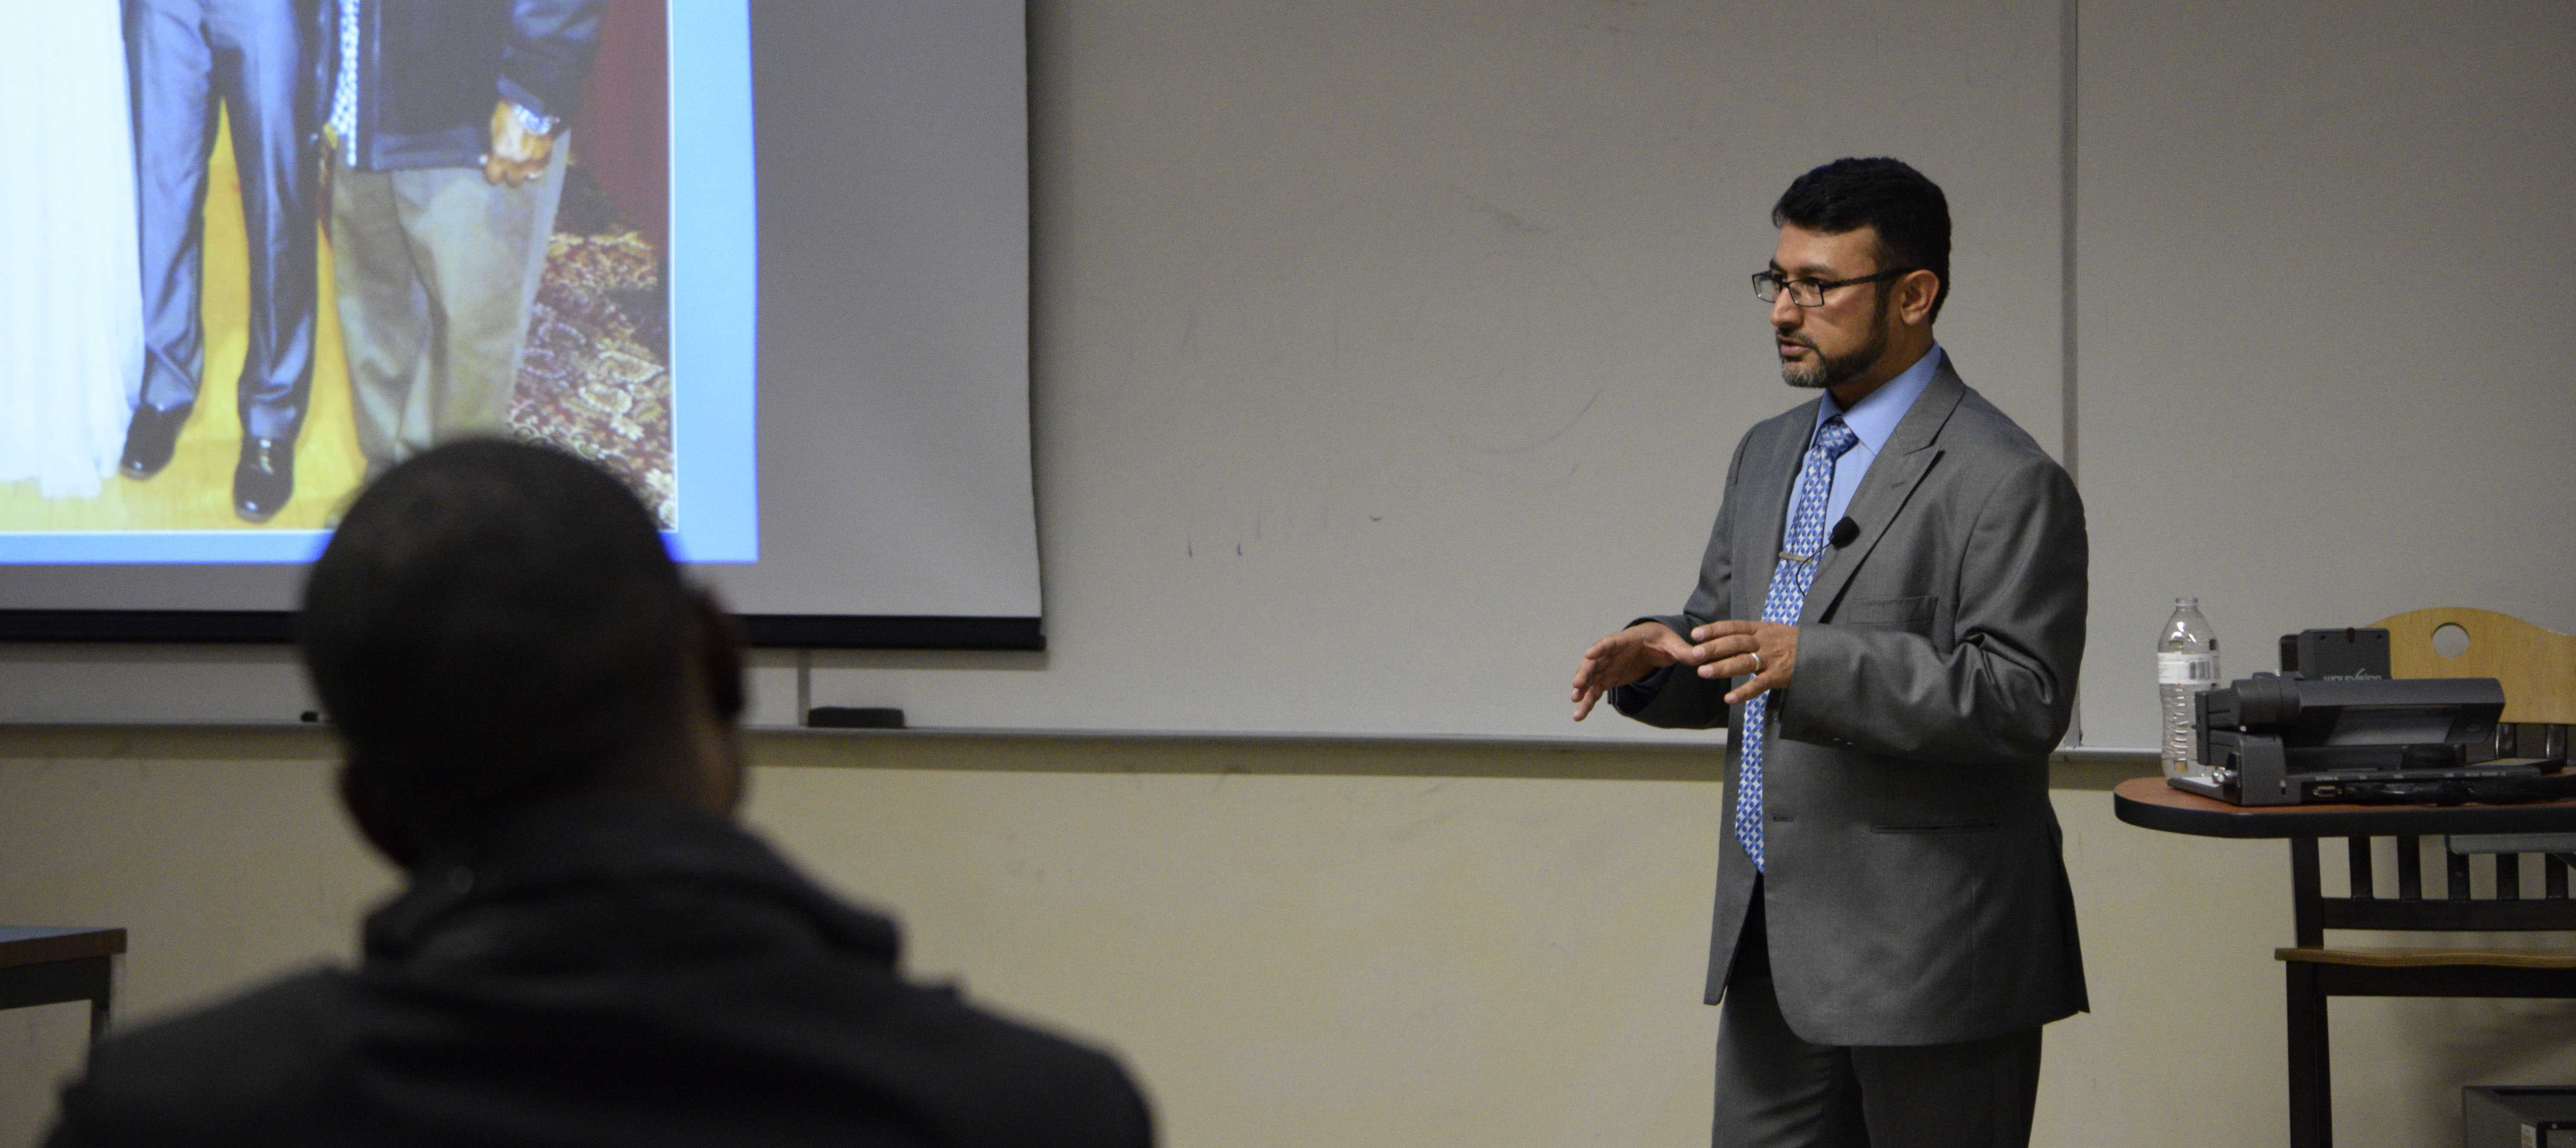 Muslim Students Association hosts lecture on Islamic culture